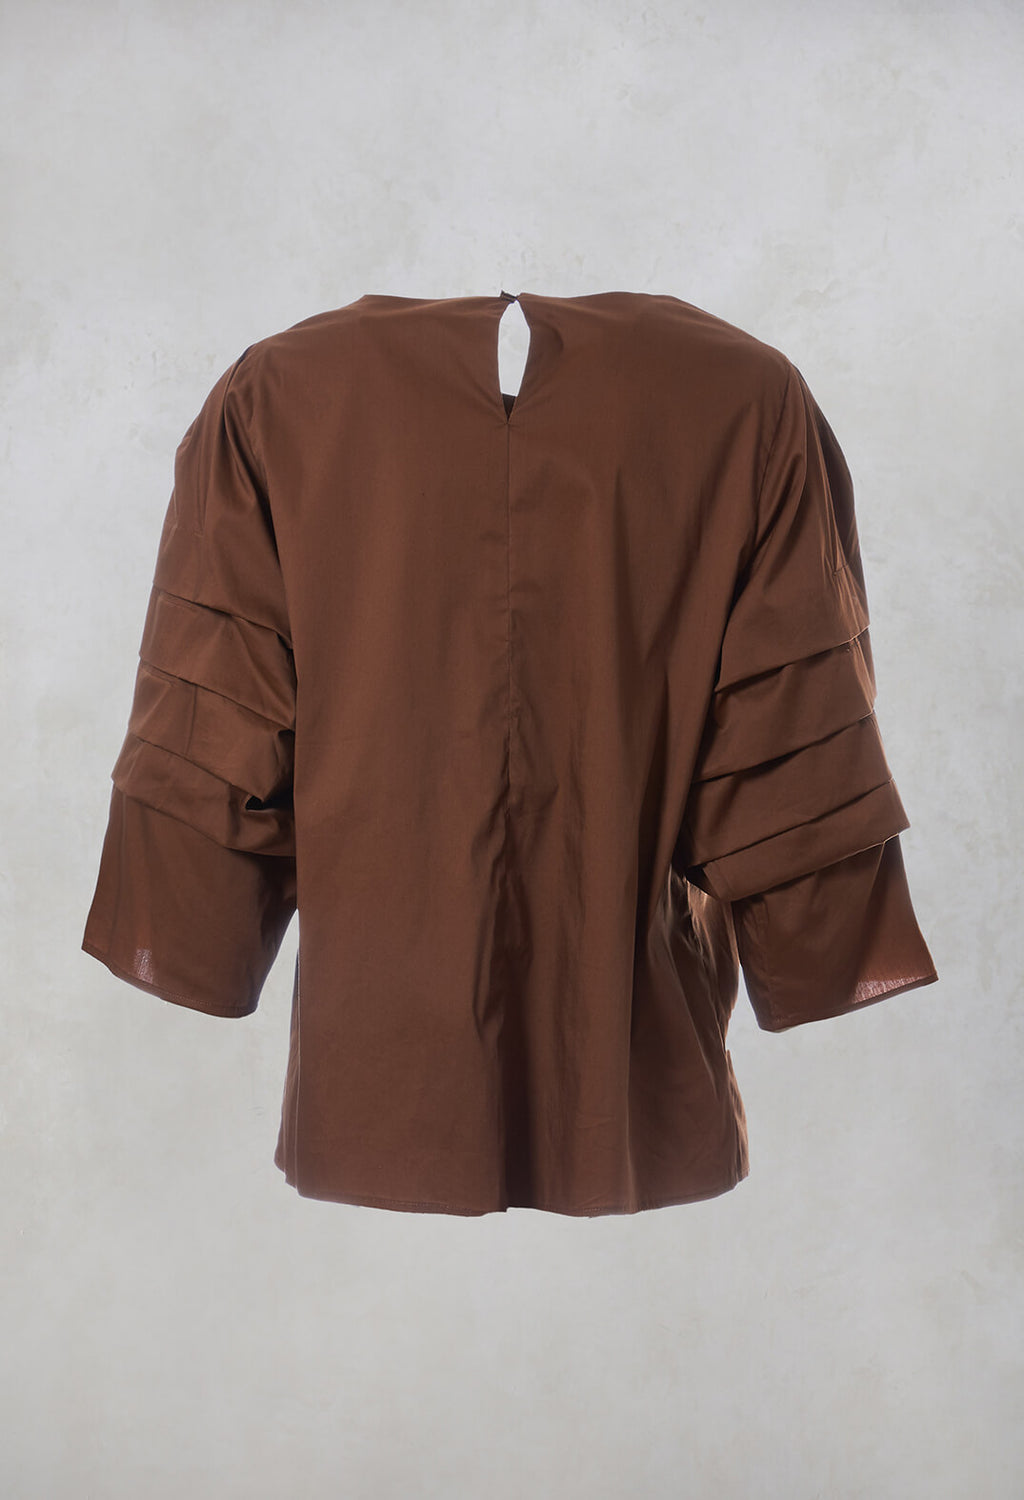 3/4 Pleated Sleeved Top in Cuoio